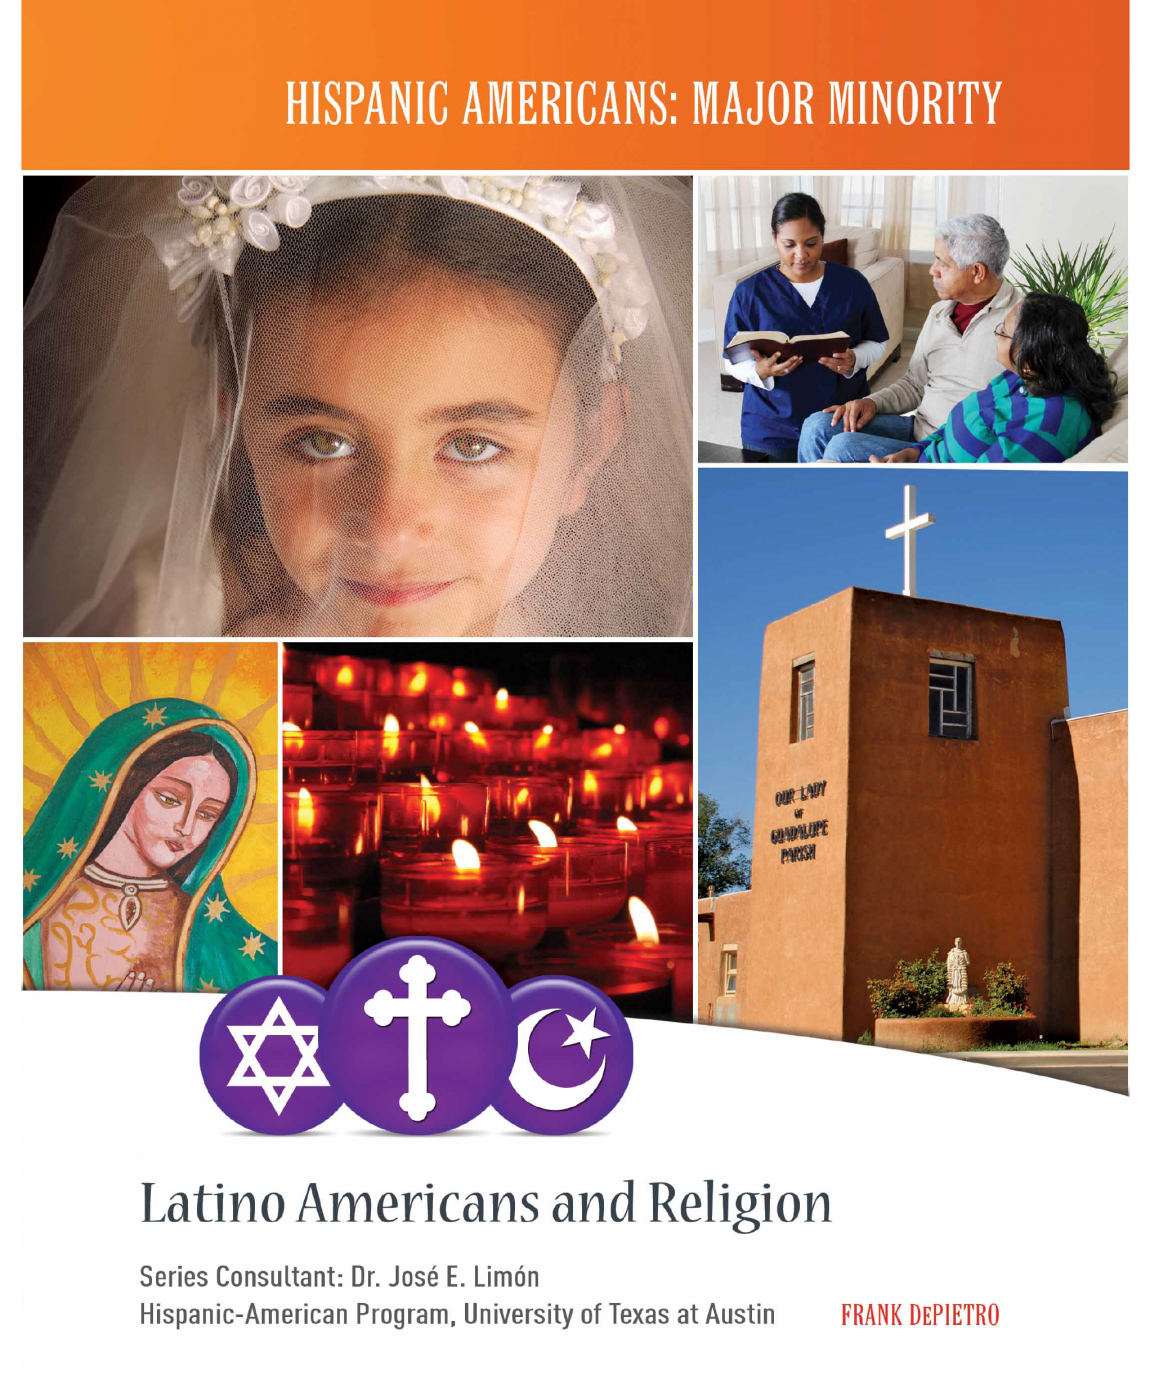 latin-americans-and-religion-01.png